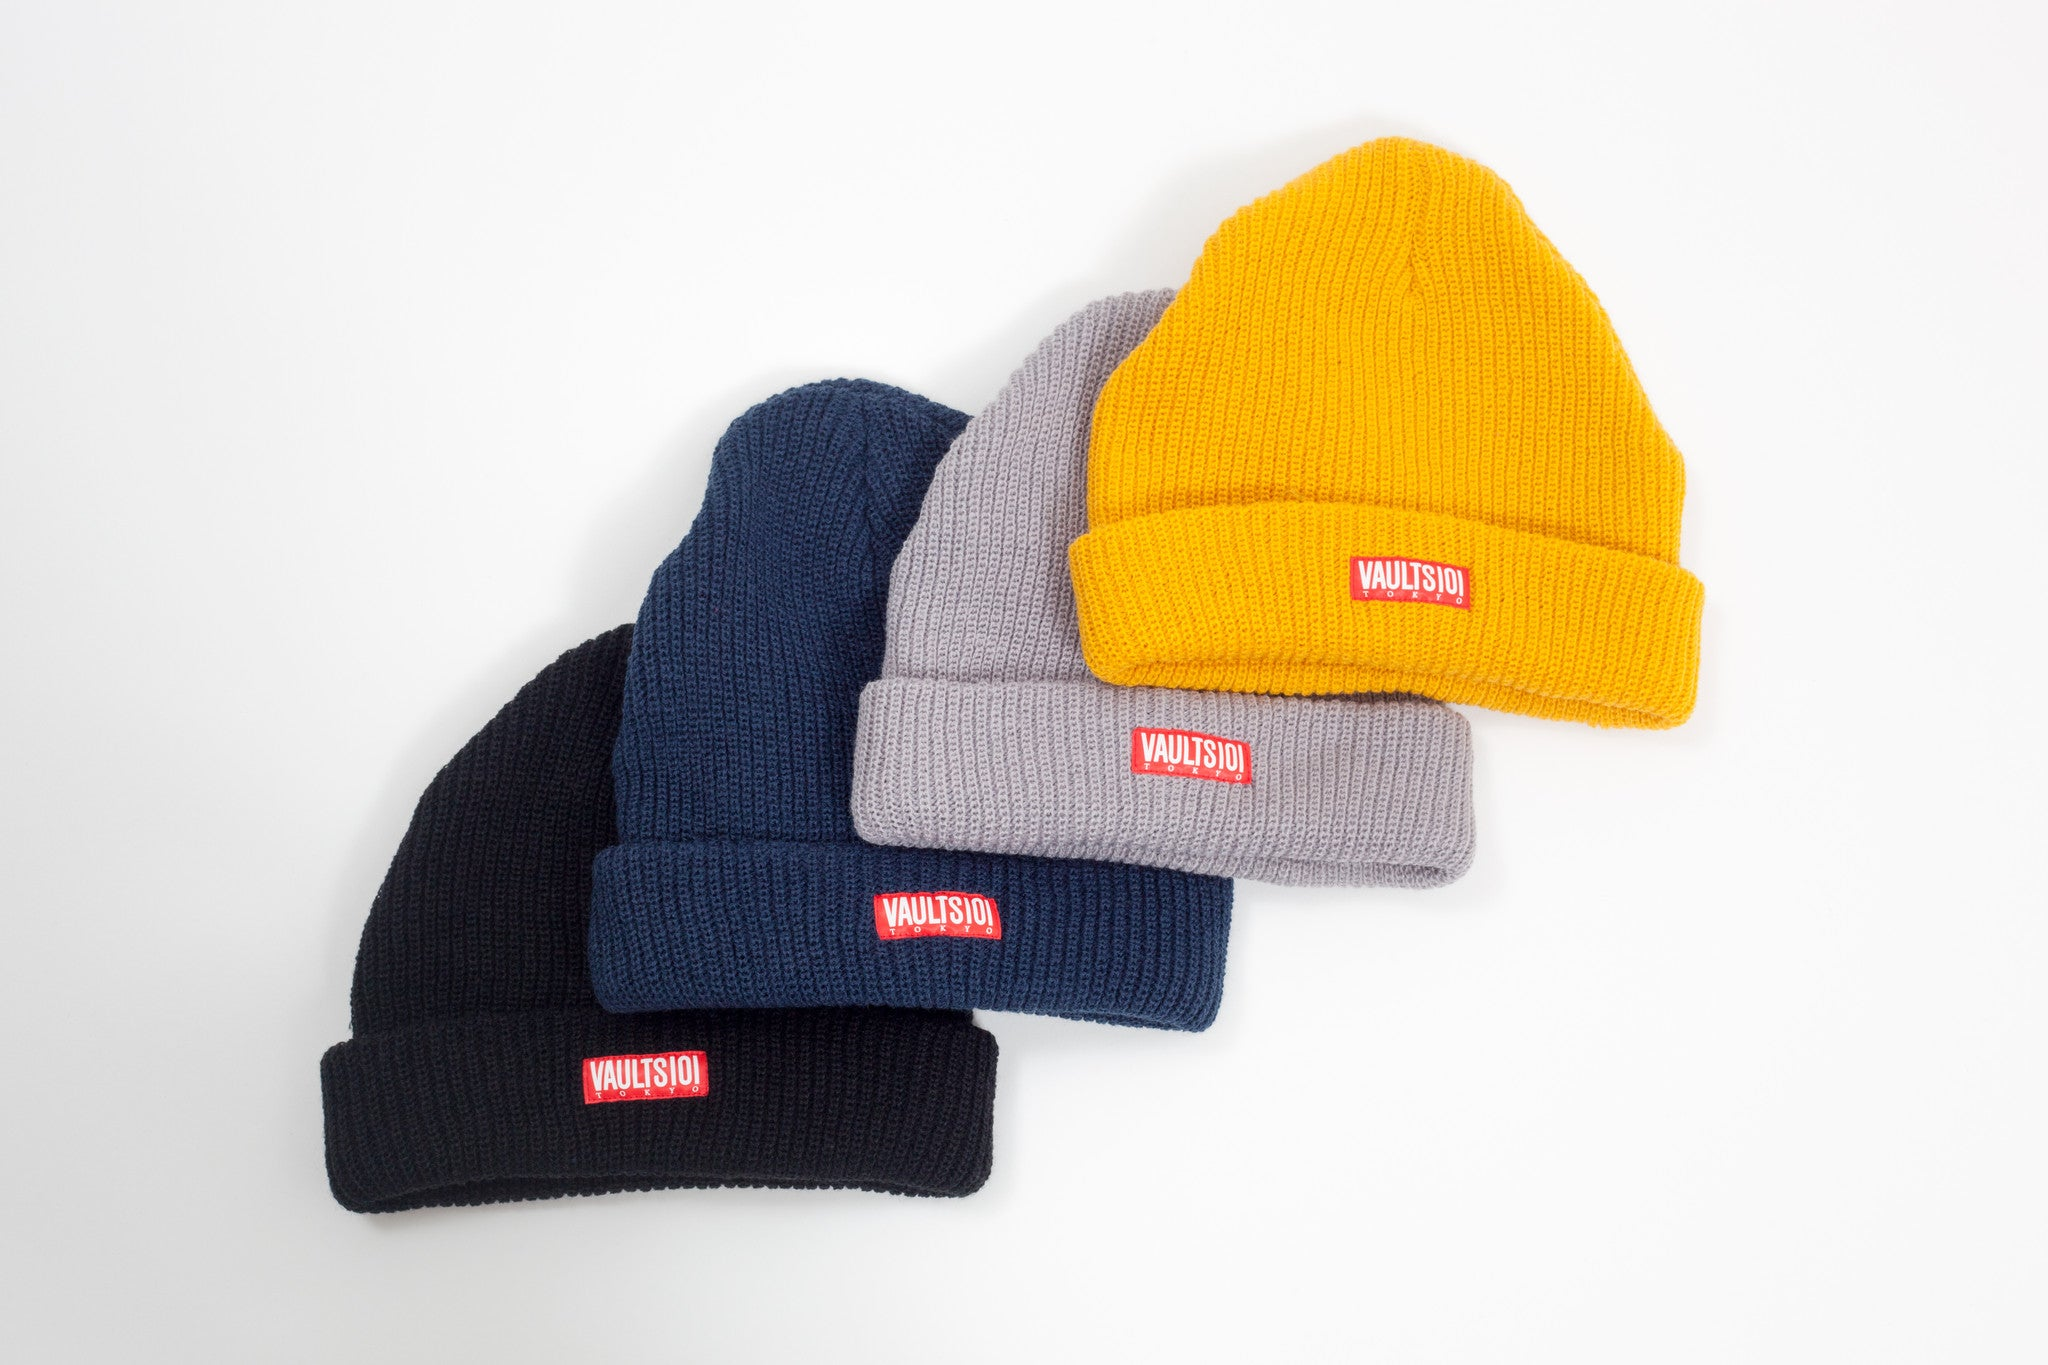 VAULTS101TOKYO RIBBED BEANIE CAP 【YELLOW】